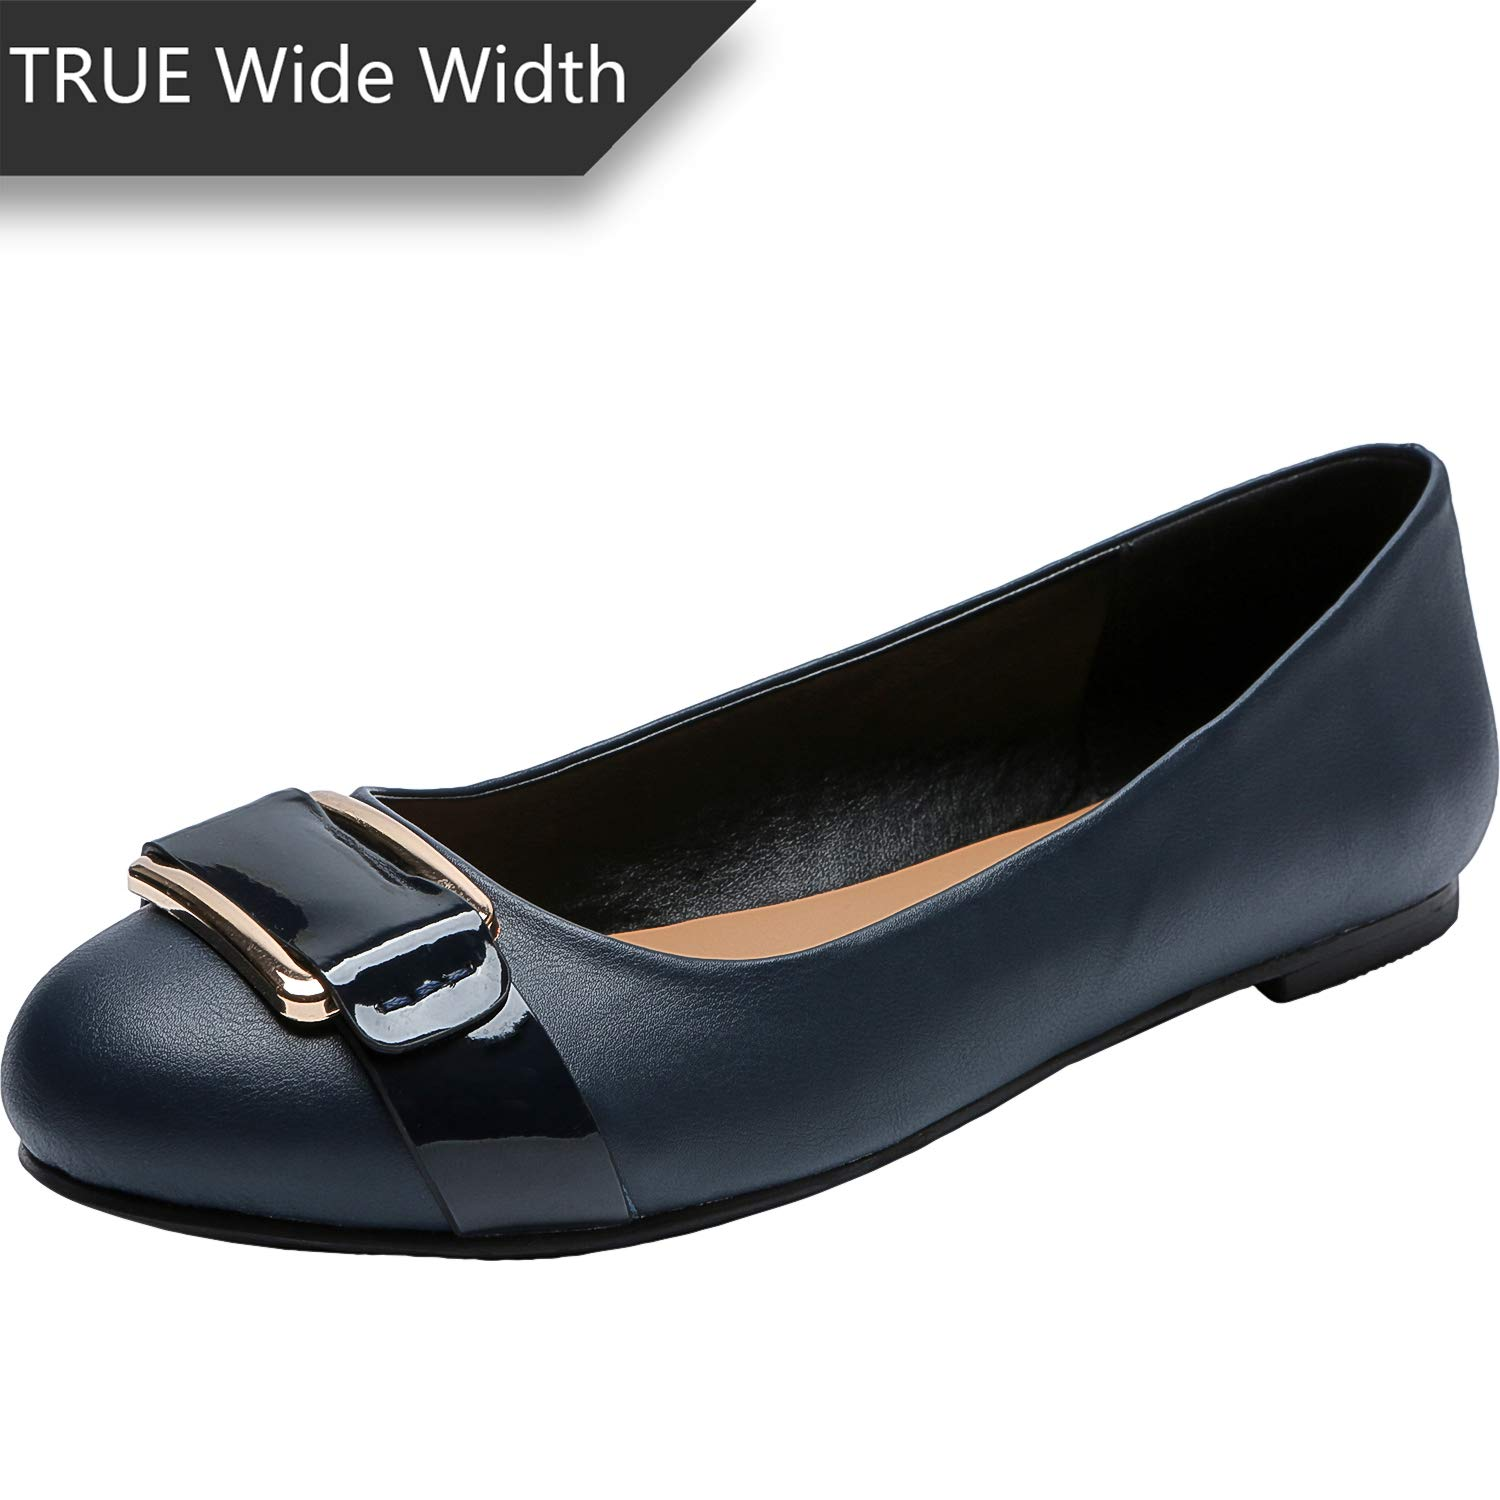 3f548095f Amazon.com | Luoika Women's Wide Width Flat Shoes - Comfortable Slip On  Round Toe Faux Leather Ballet Flats. | Sandals